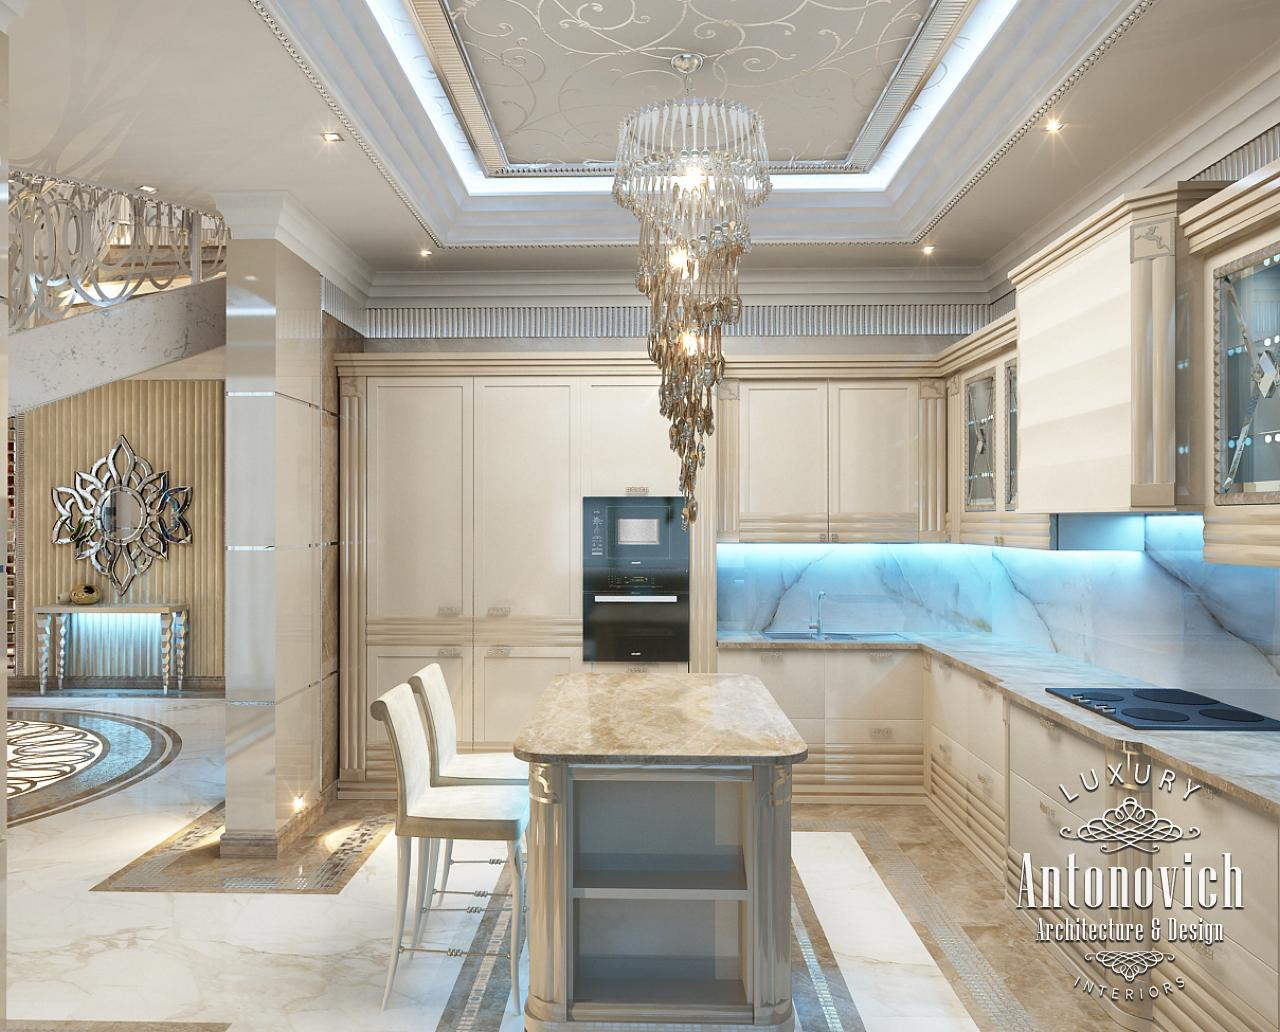 Luxury antonovich design uae luxury interior design dubai for Best luxury interior designers